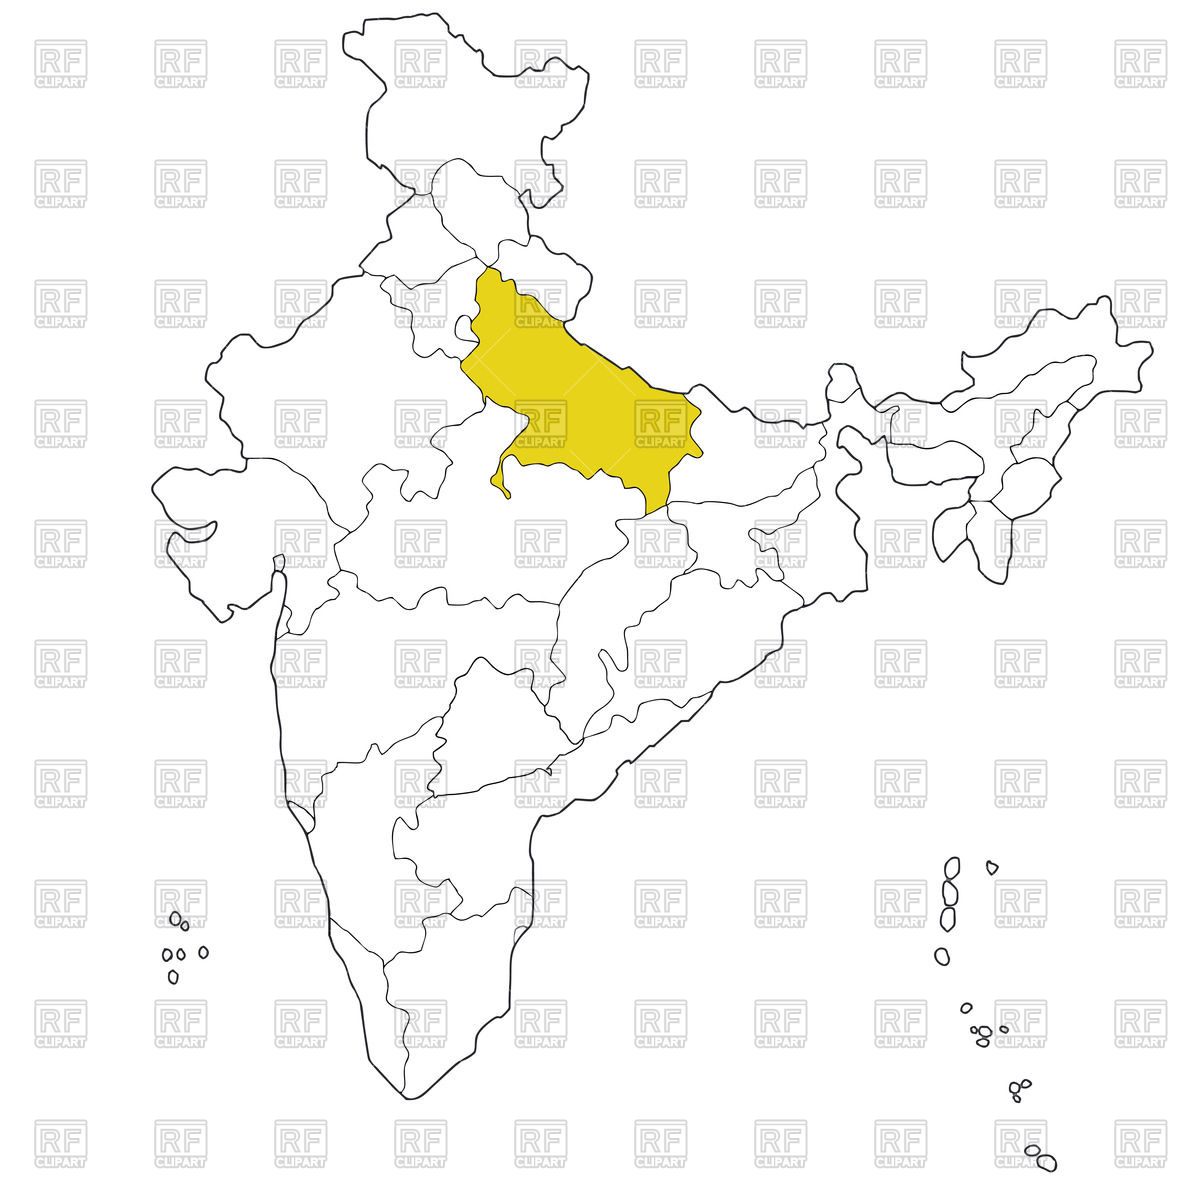 Northern state Uttar Pradesh on the map of India Vector Image.